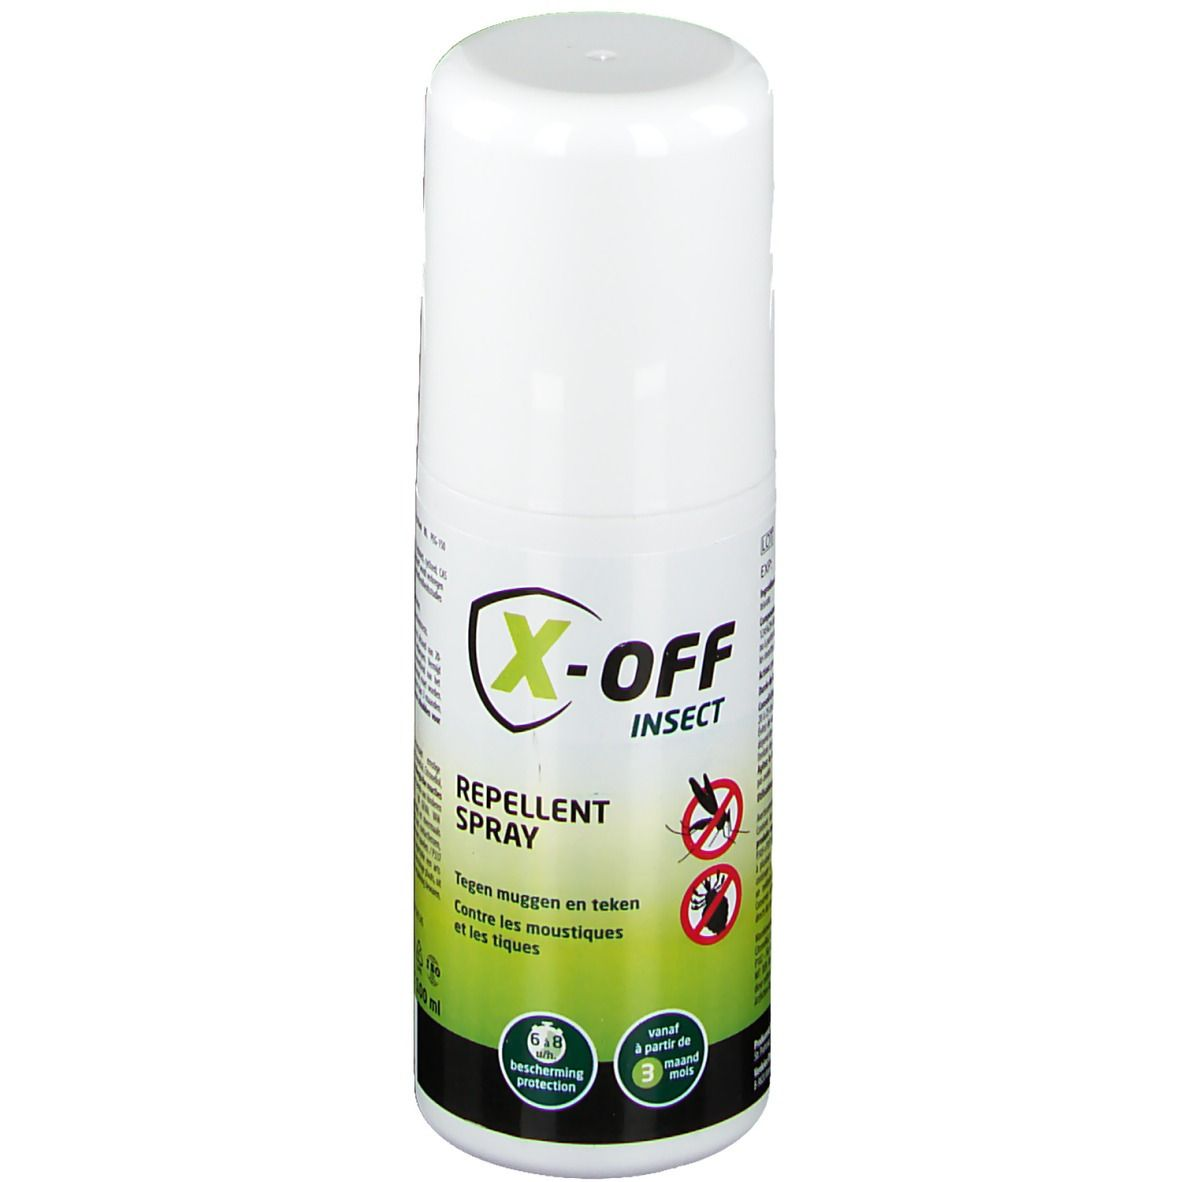 Afbeelding van X-off Insect Repellent Spray